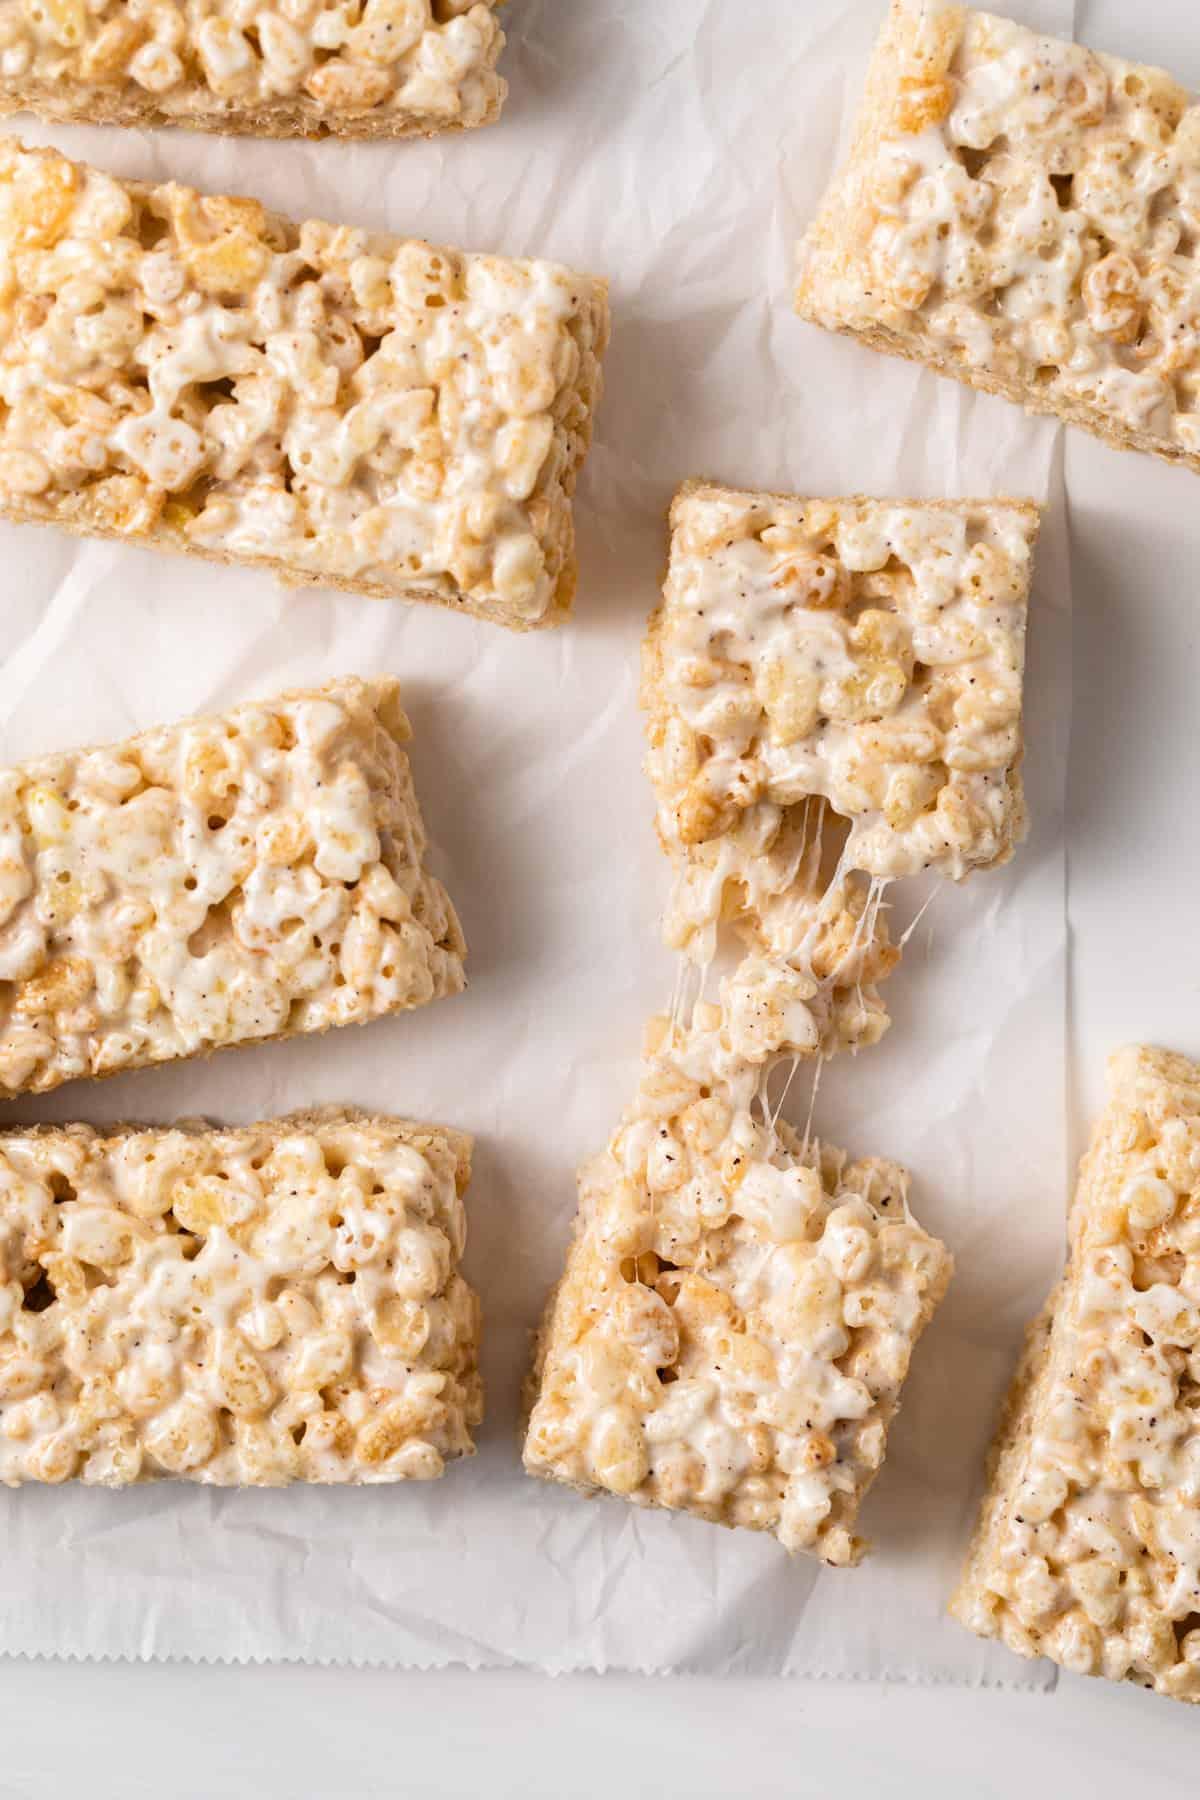 rice krispie treats with one pulled apart to show how gooey it is